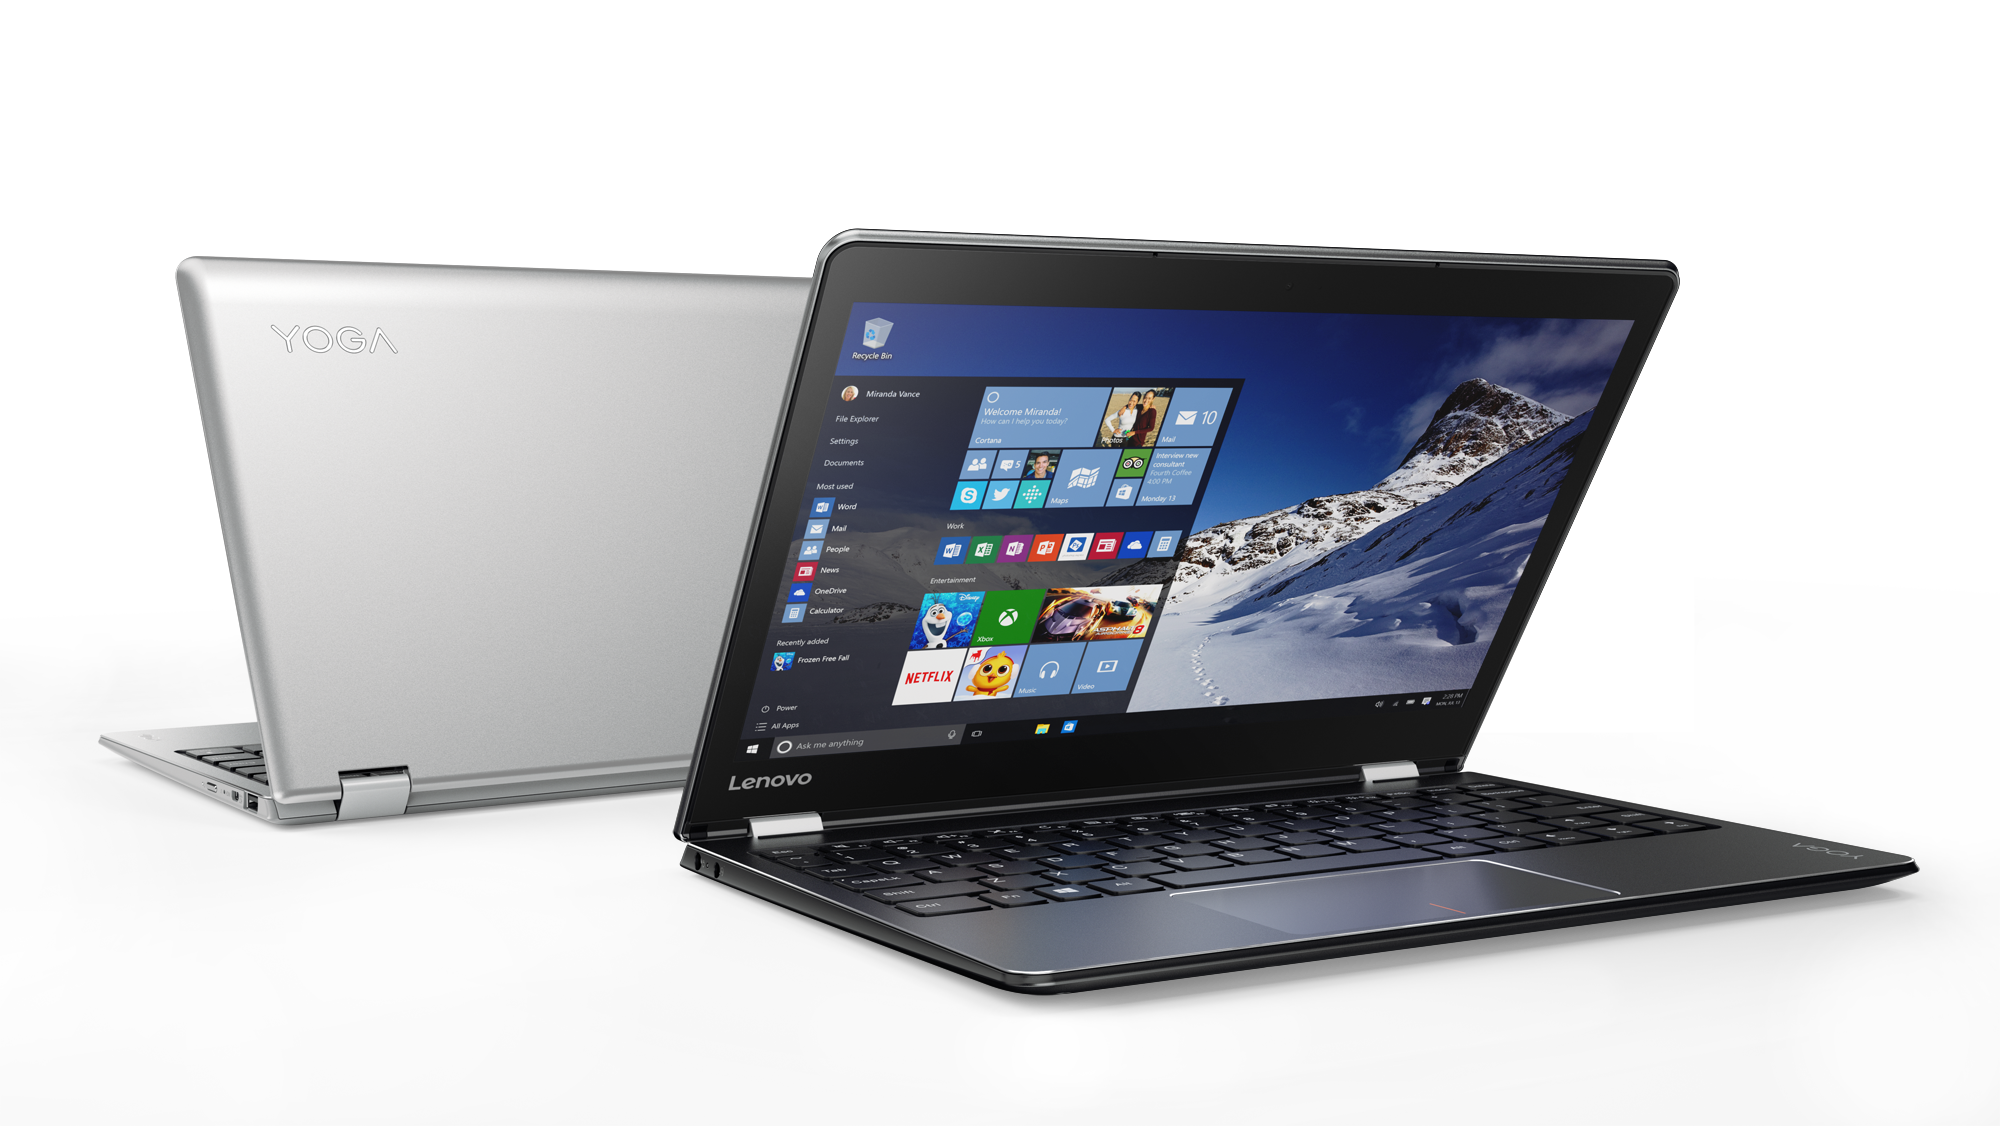 Lenovo YOGA 710 11-inch_black and silver